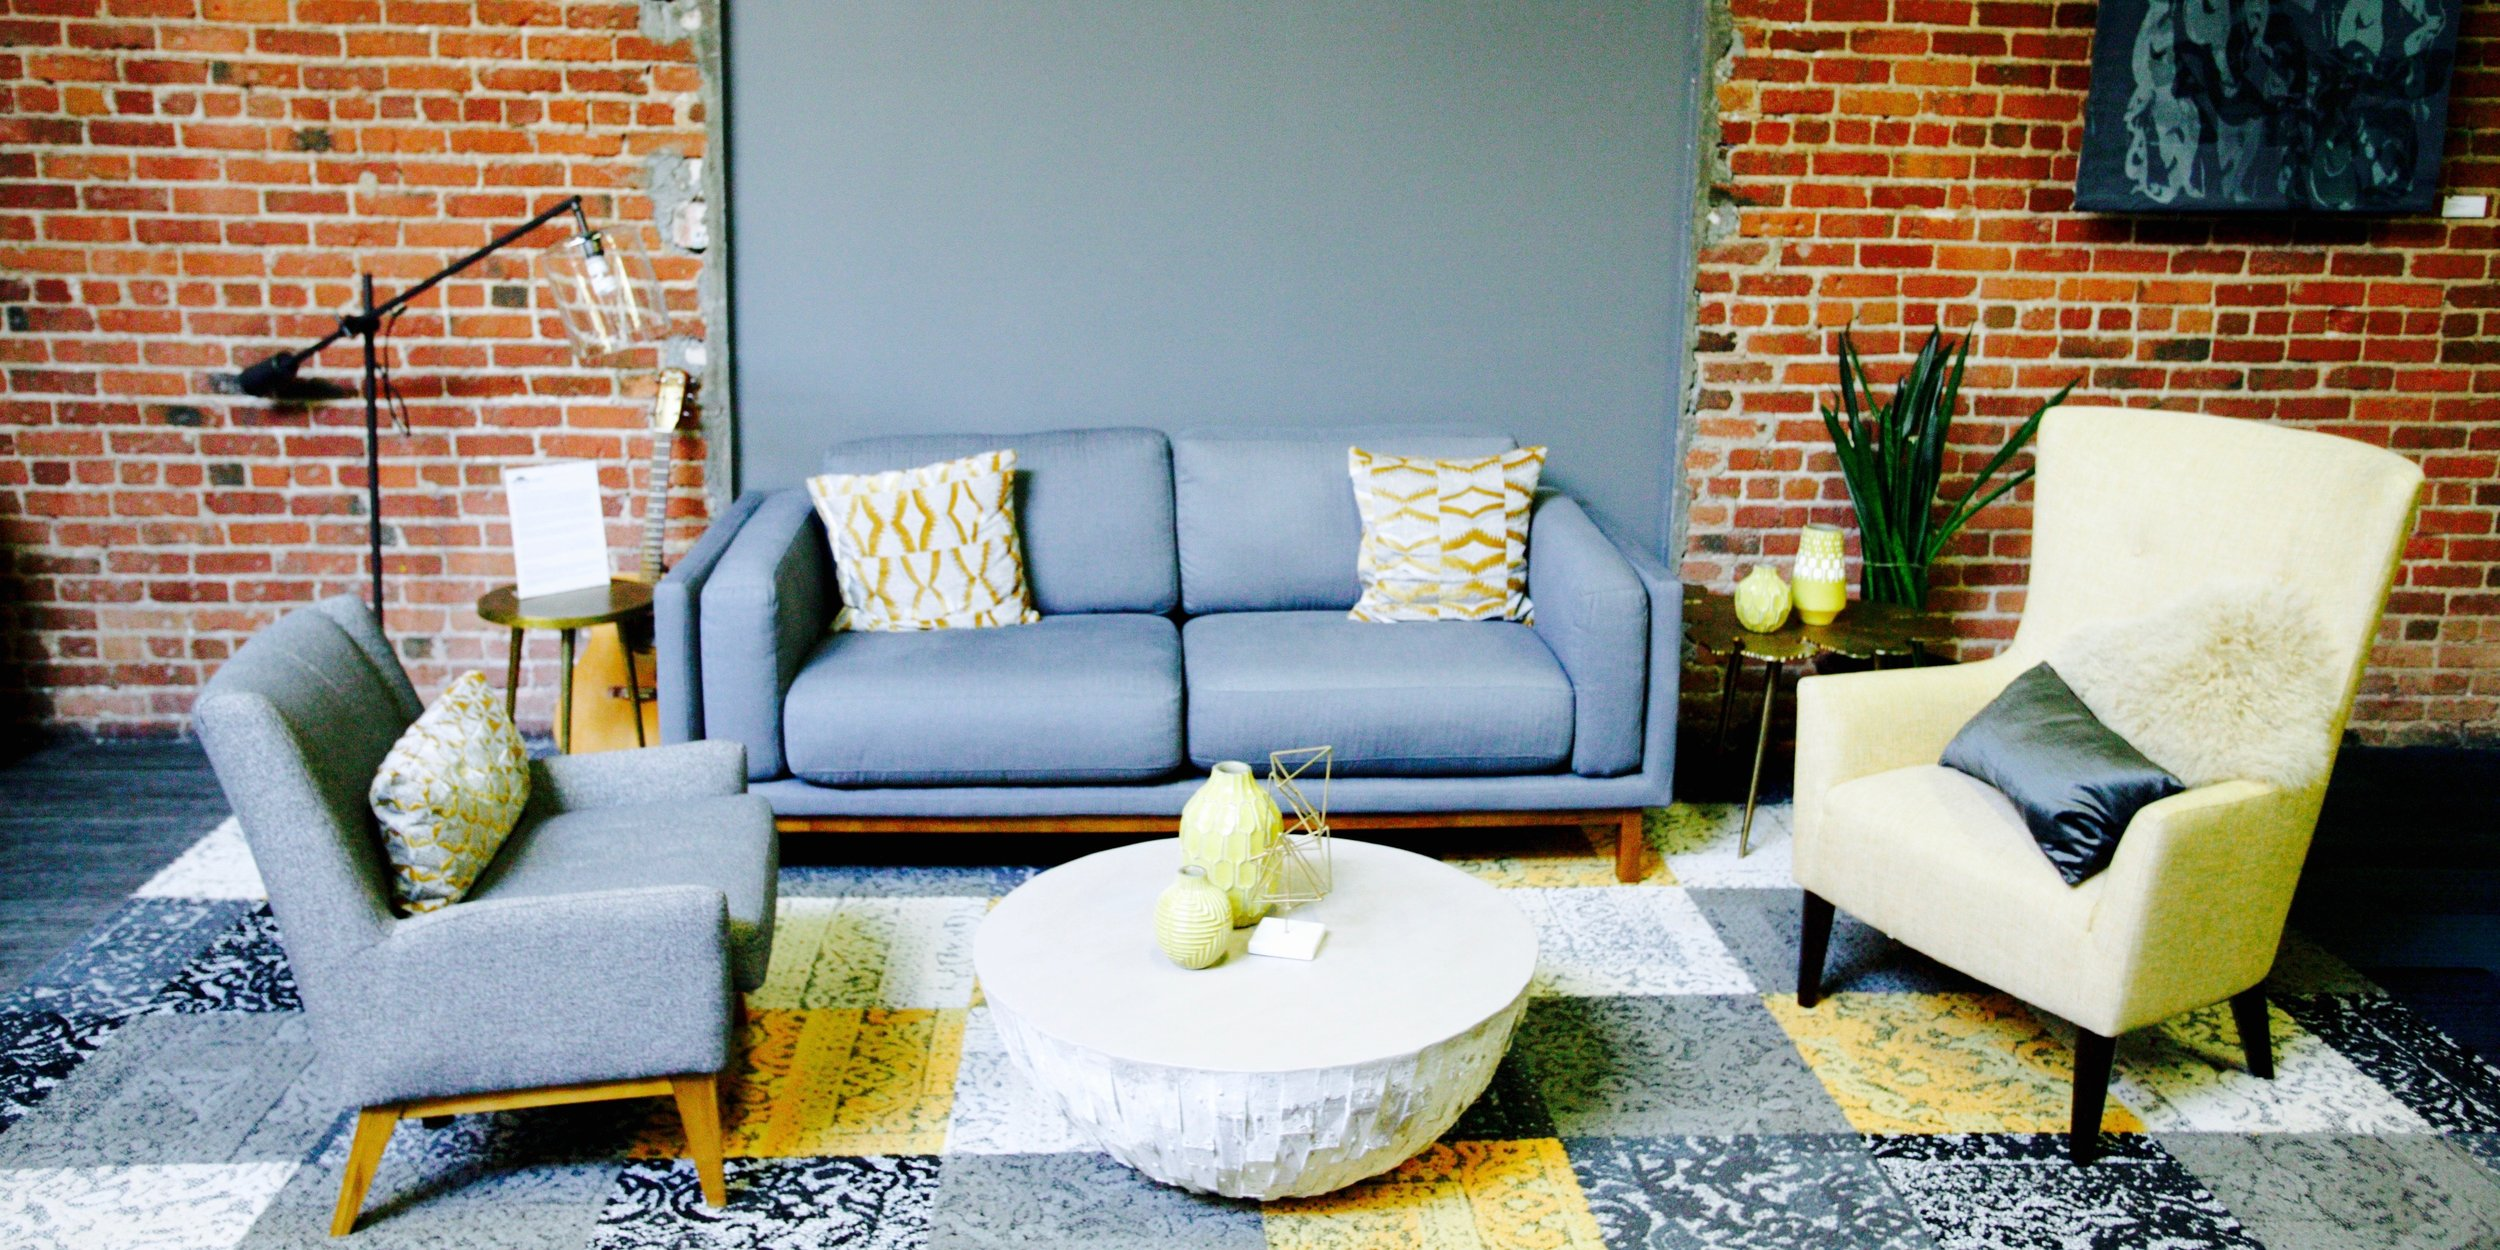 COMFY LOUNGE AREAS